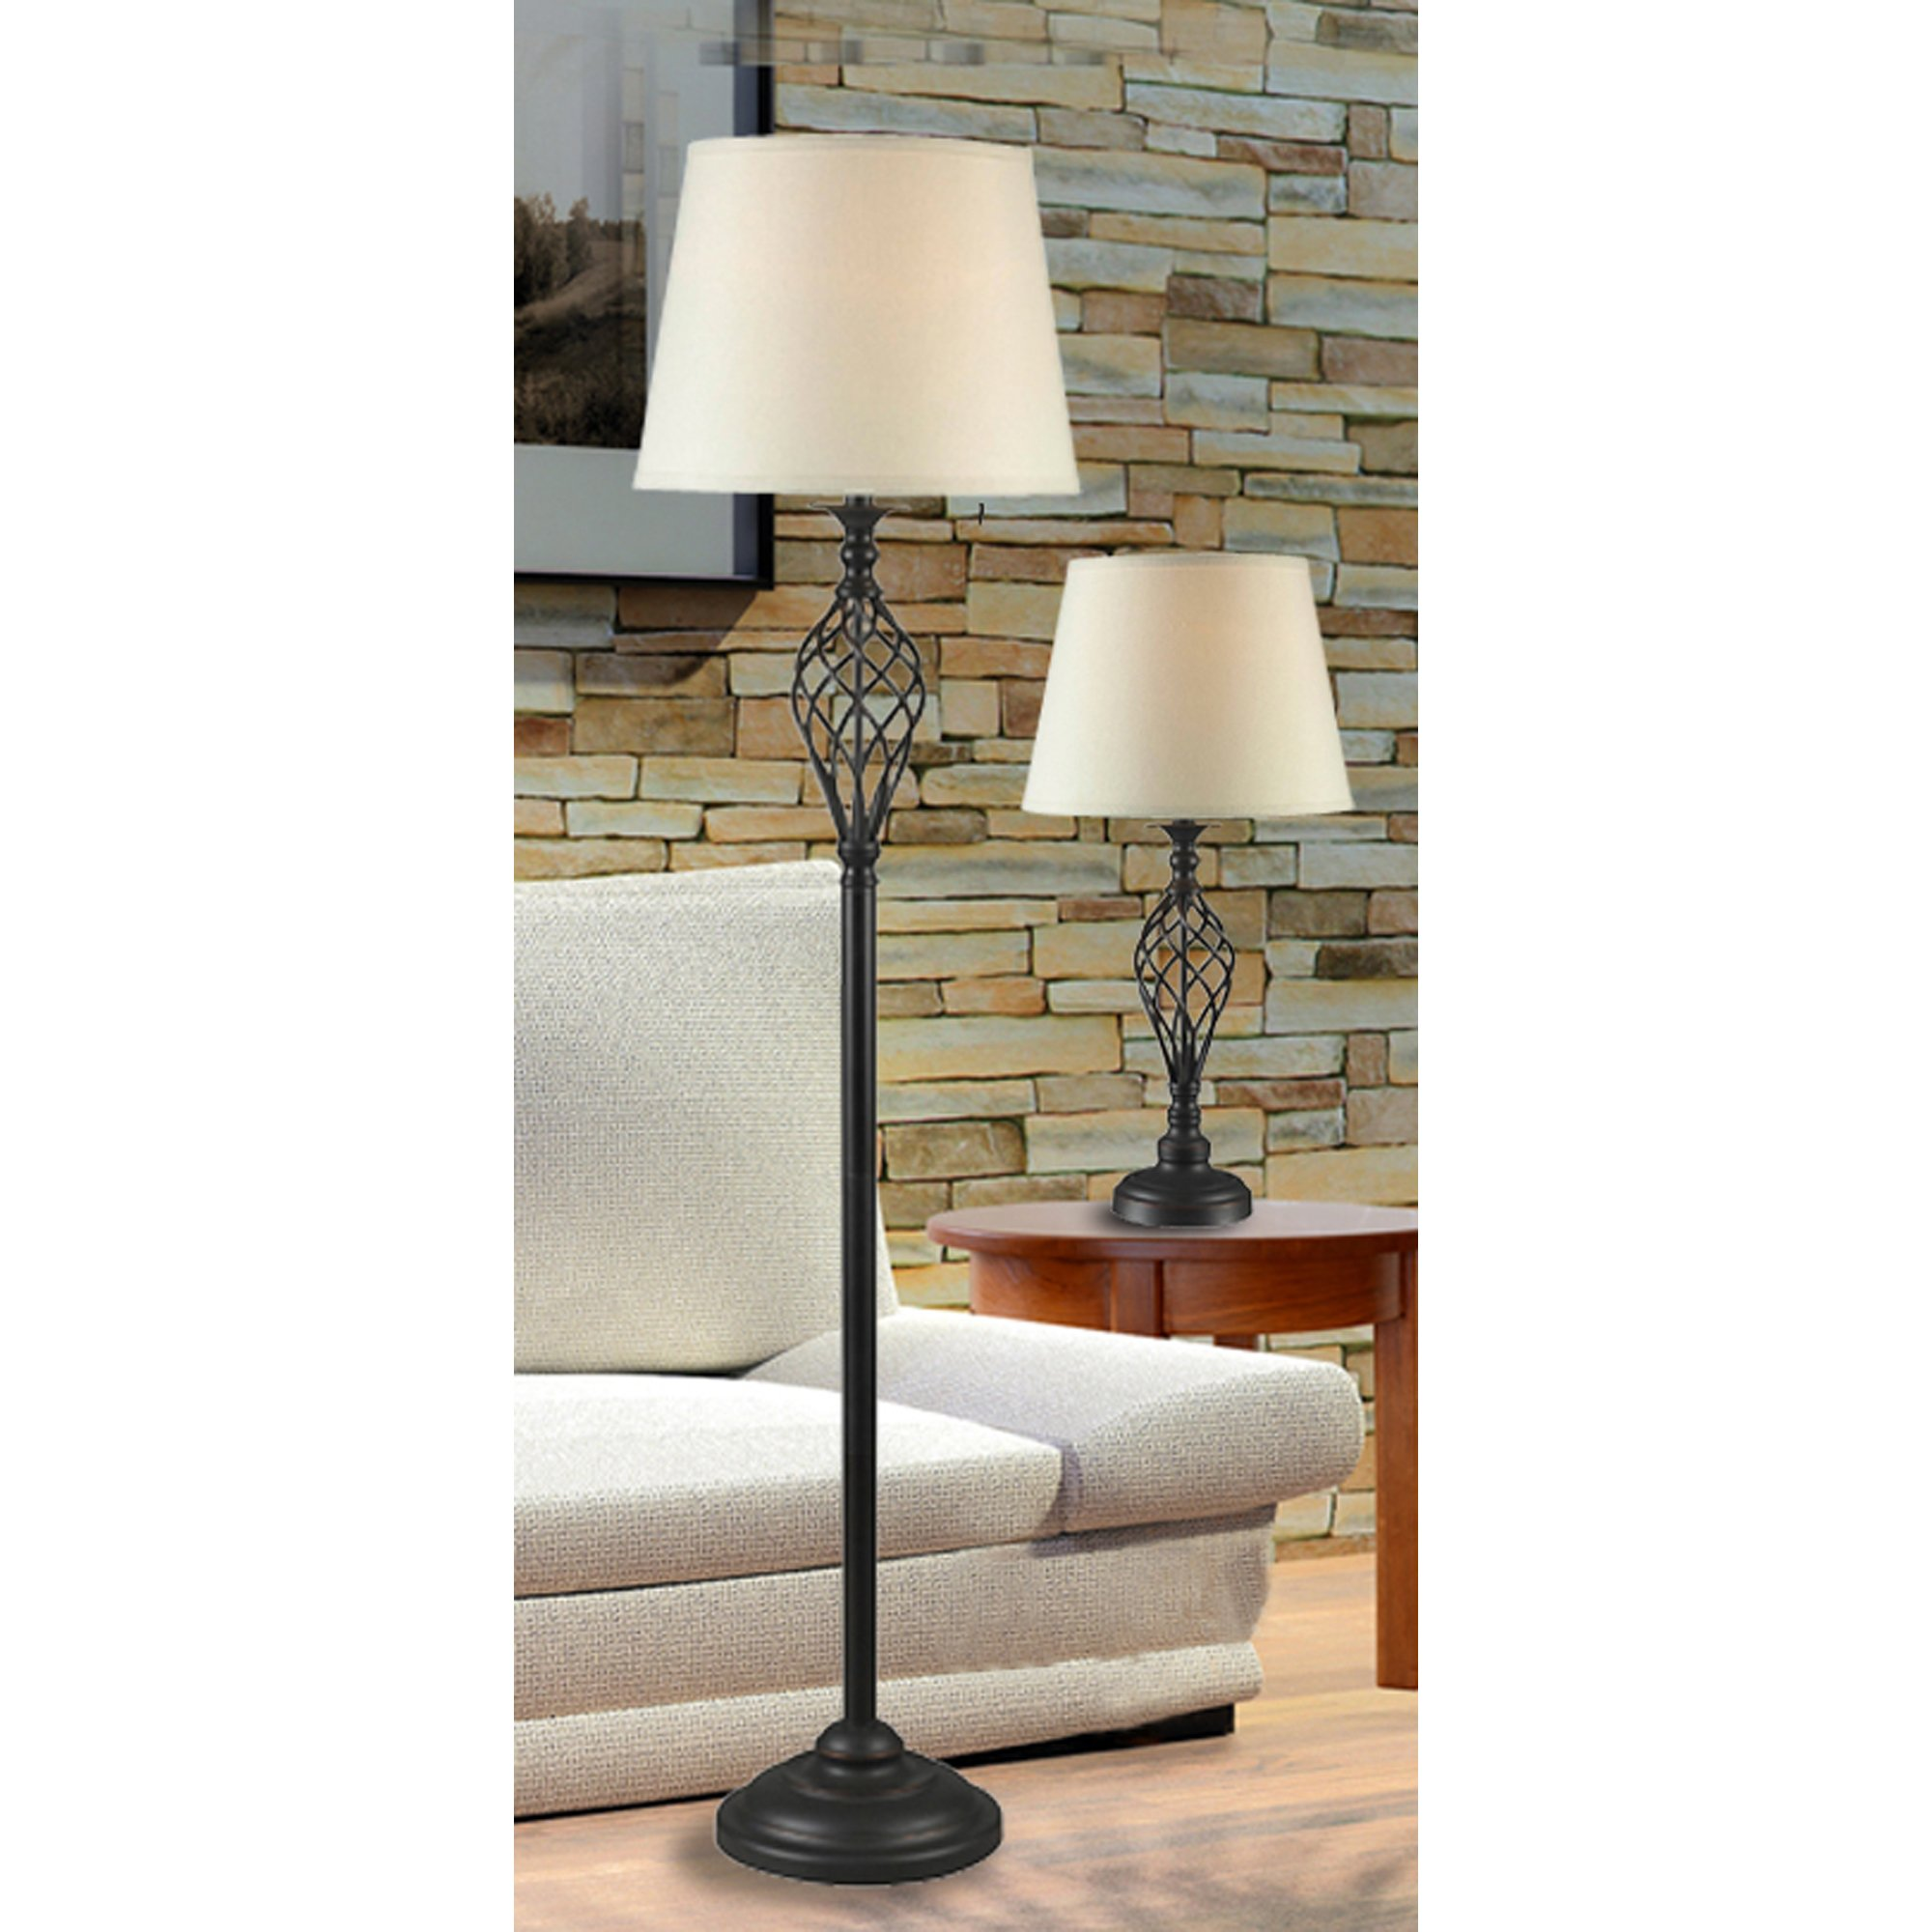 Kenroy Home 32190ORB Avett Lamp Set, 3-Pack by Kenroy Home